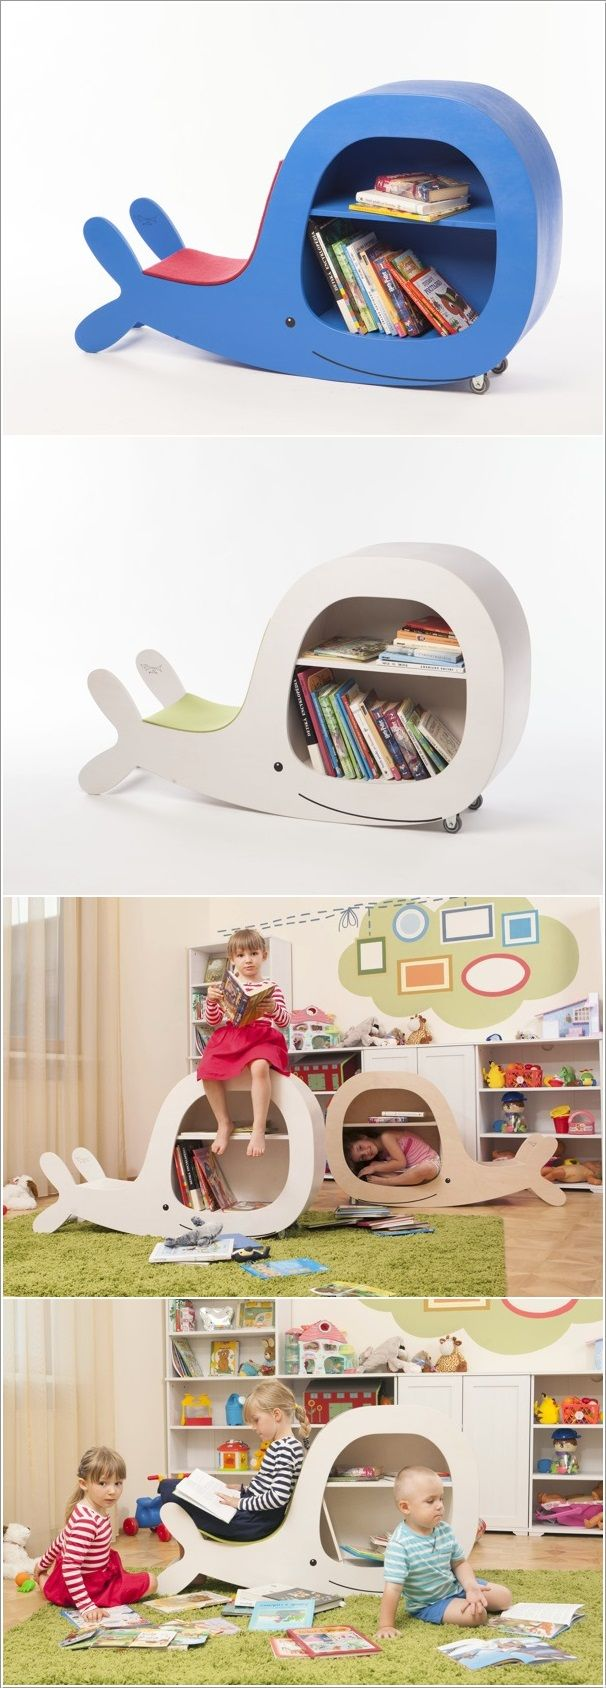 whale bookshelves for the kids' room | craft and diy | pinterest